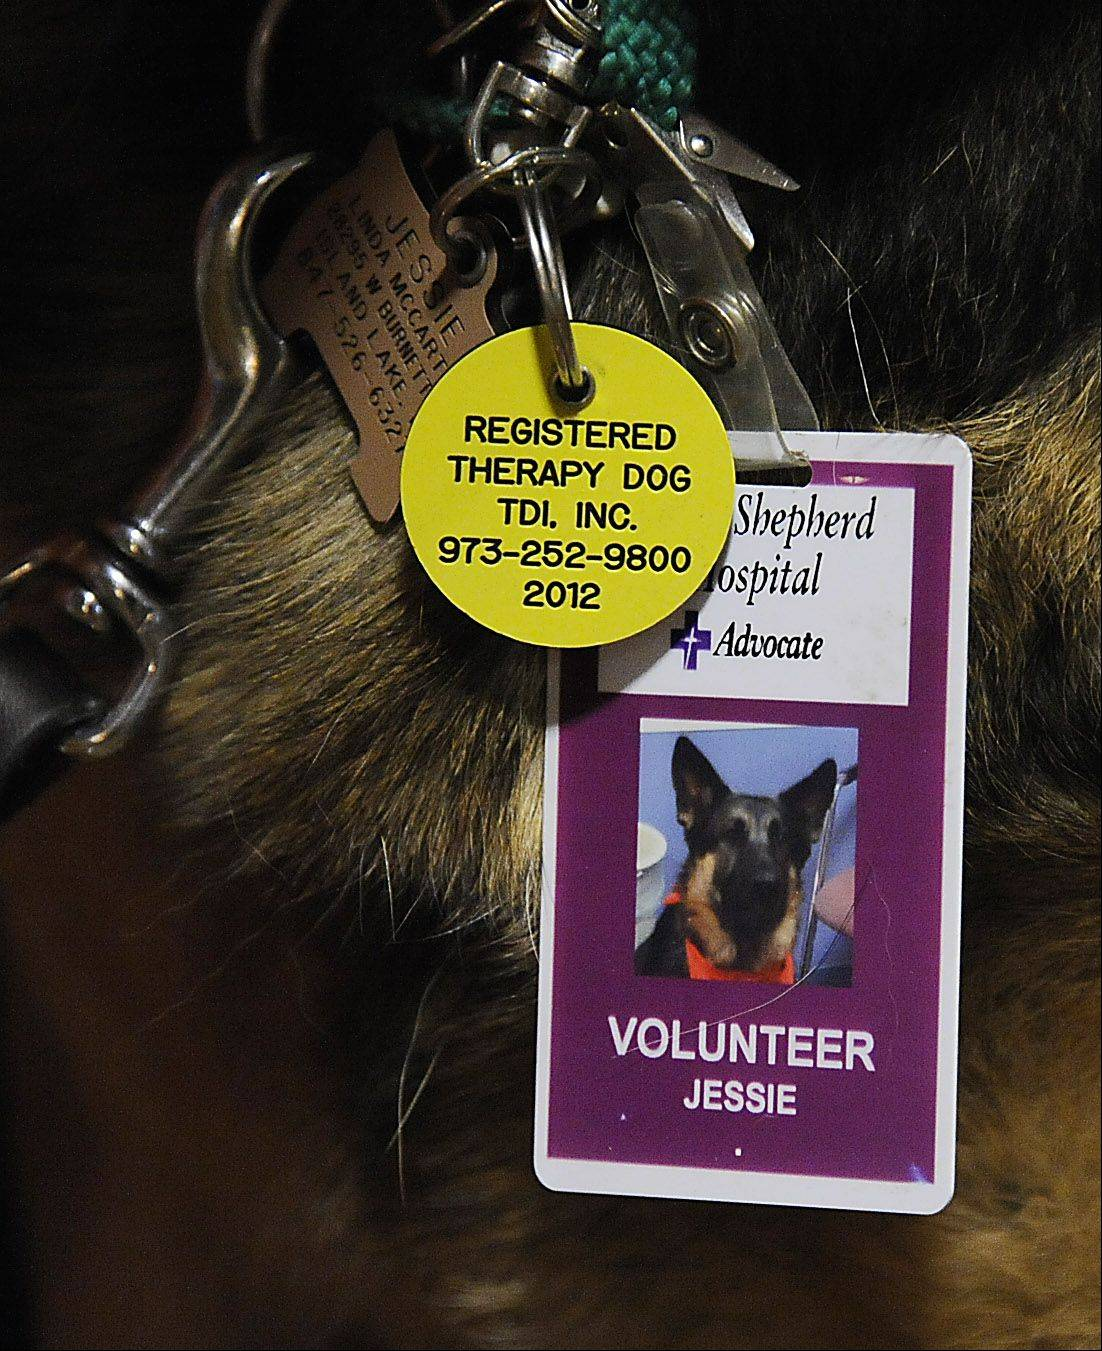 Jessie is a volunteer in good standing with Advocate Good Shepherd Hospital in Barrington.